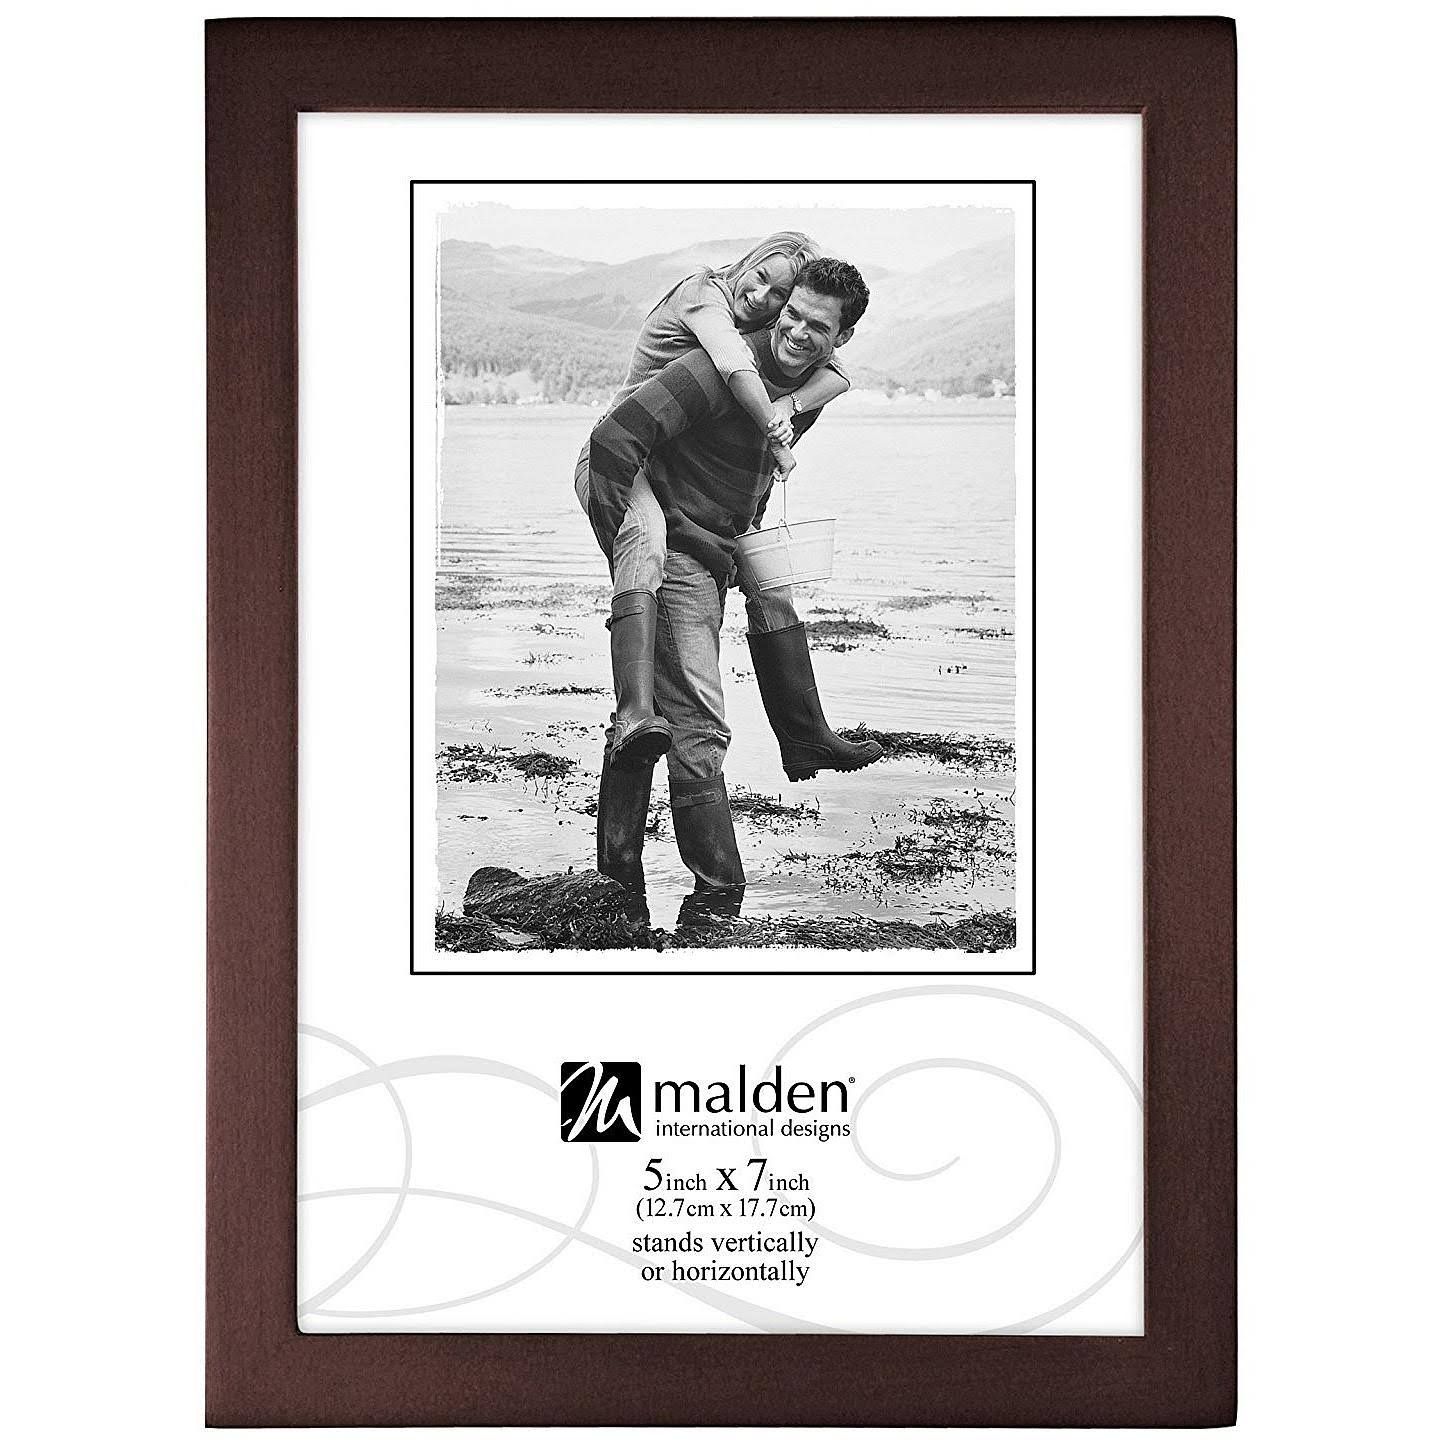 Malden Walnut Concepts 5x7 Picture Frame